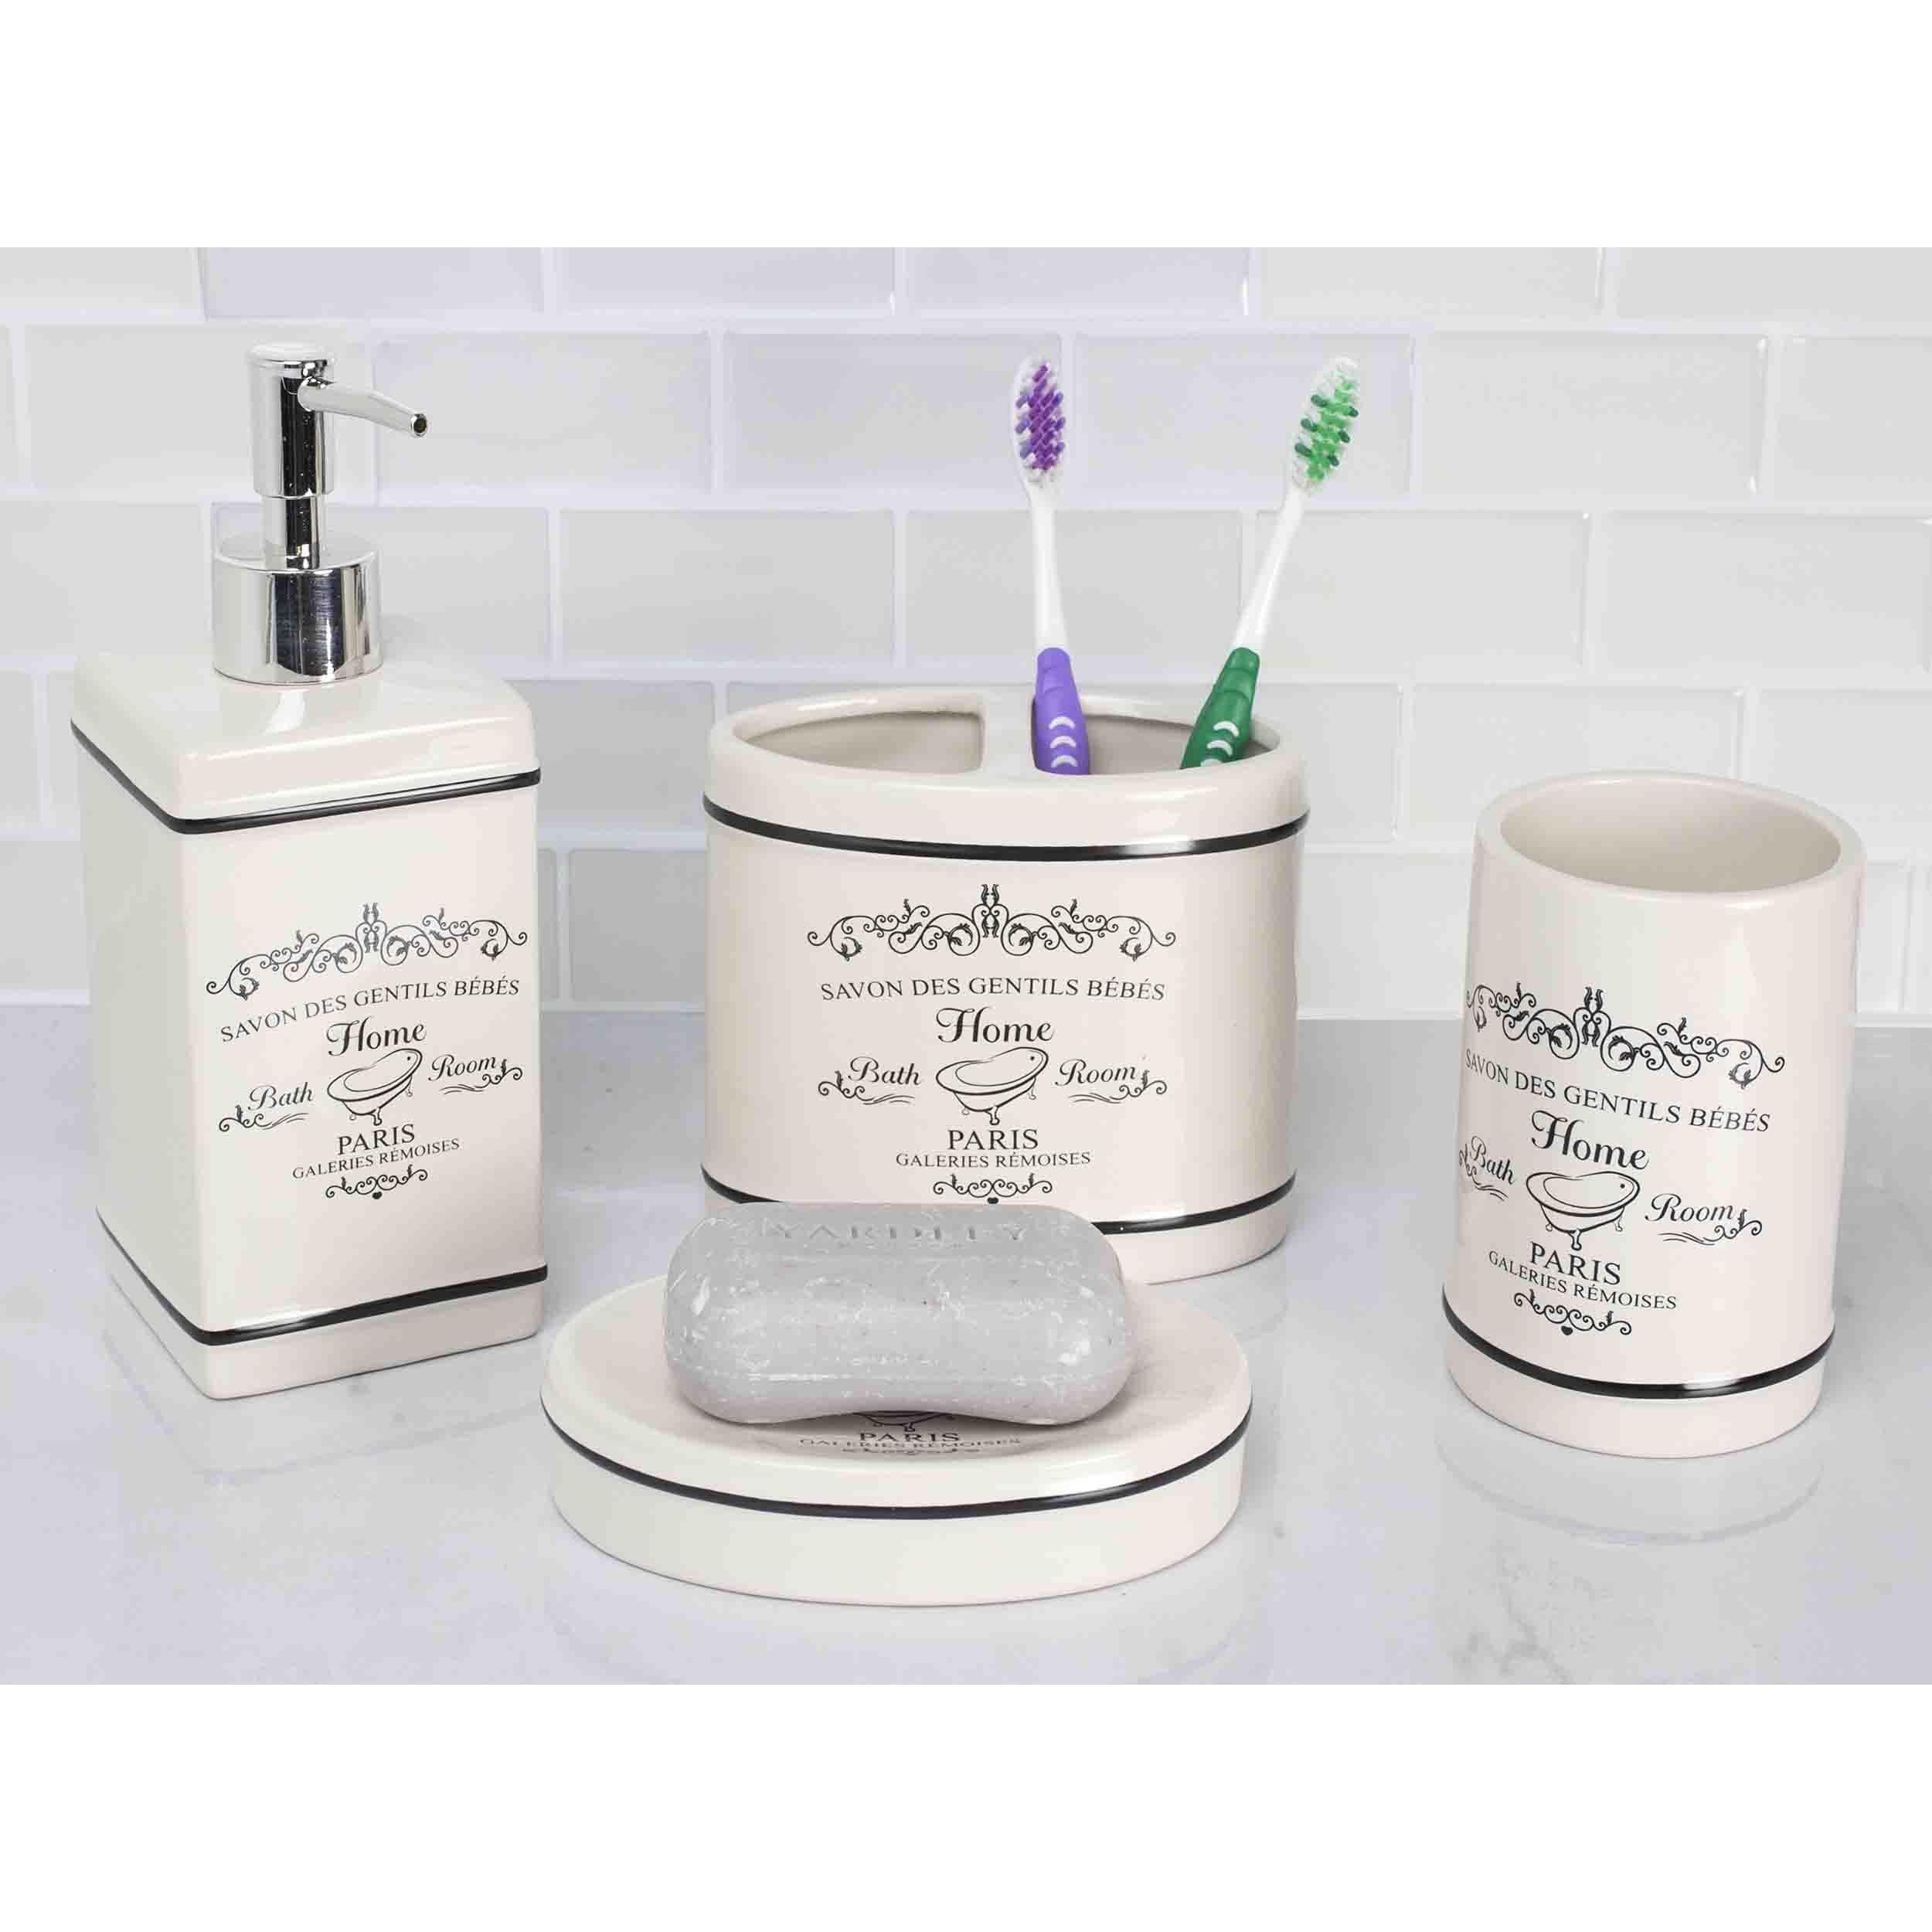 . Home Basics Paris Off White Ceramic 4 piece Bathroom Accessory Set